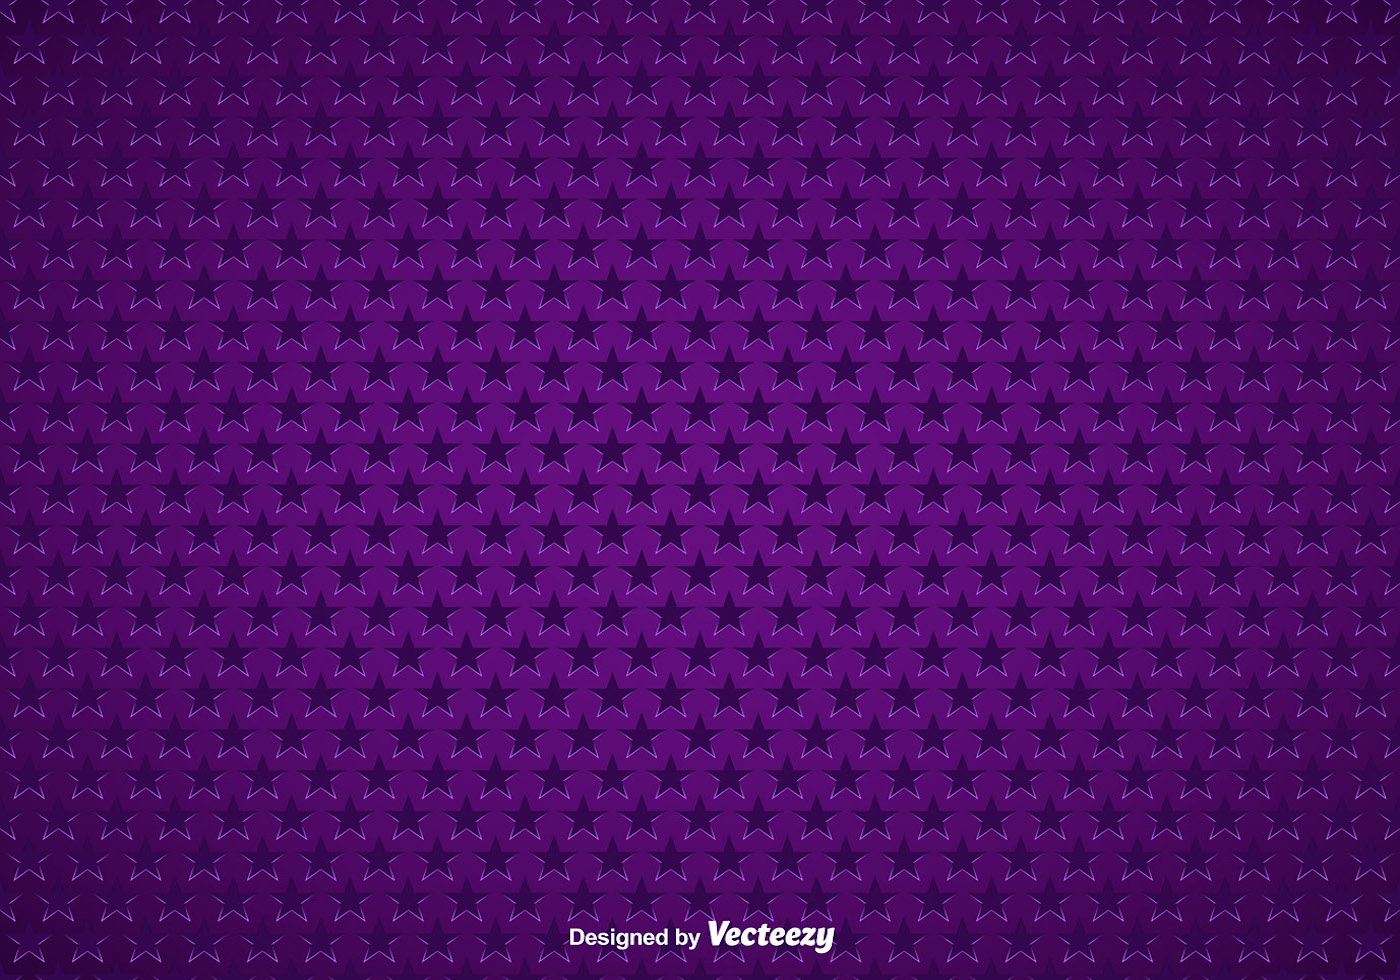 Falling Glitter Confetti Wallpapers Purple Background With Stars Seamless Pattern Download